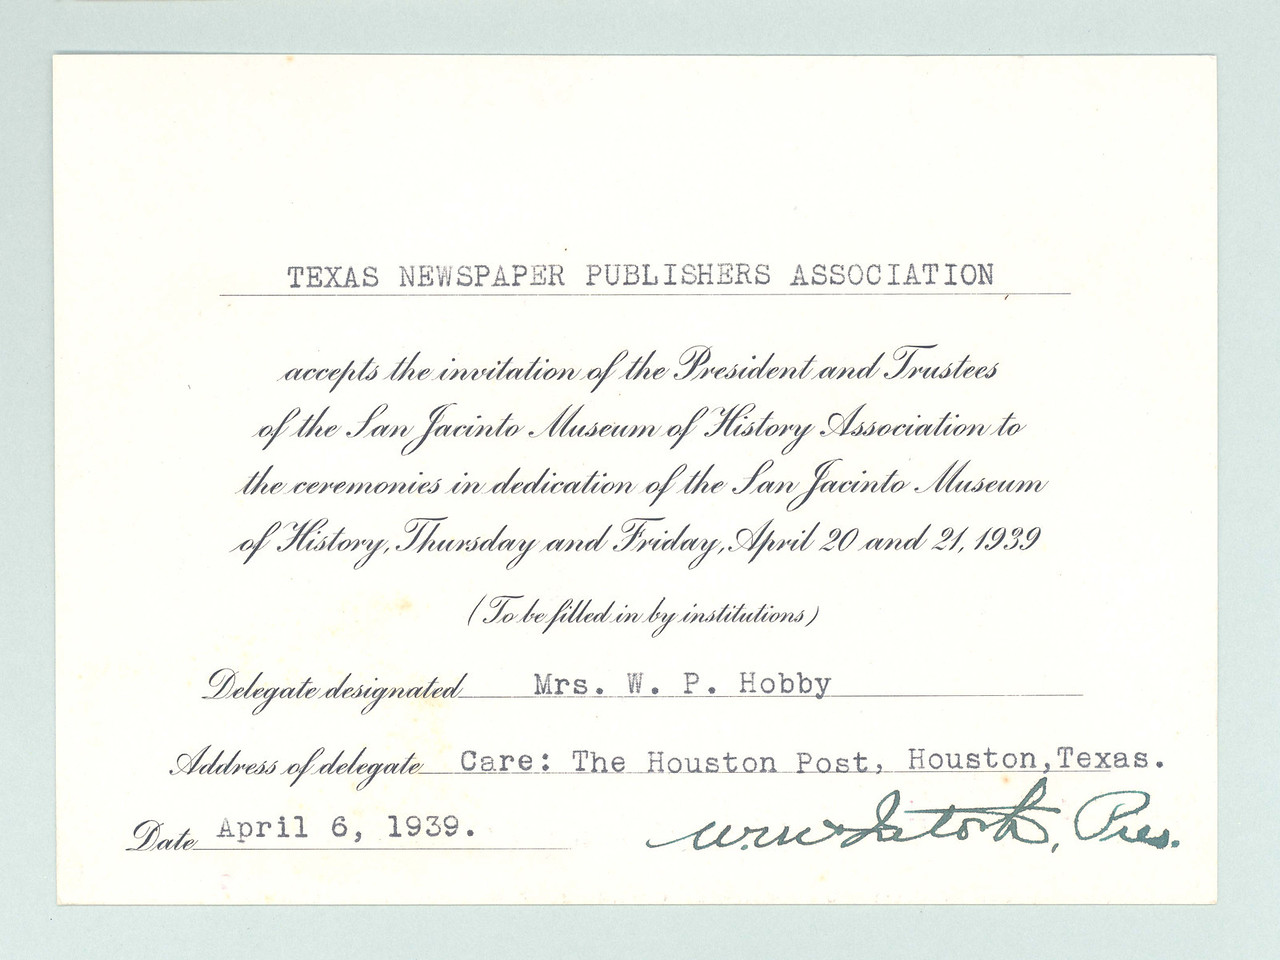 Special guests responded using an engraved RSVP card, such as this one returned by Oveta Culp Hobby, who attended as the representative of the Texas Newspaper Publishers Association.  Representatives from Great Britain, France, Italy, China, the Dominican Republic, and the Vatican were present.